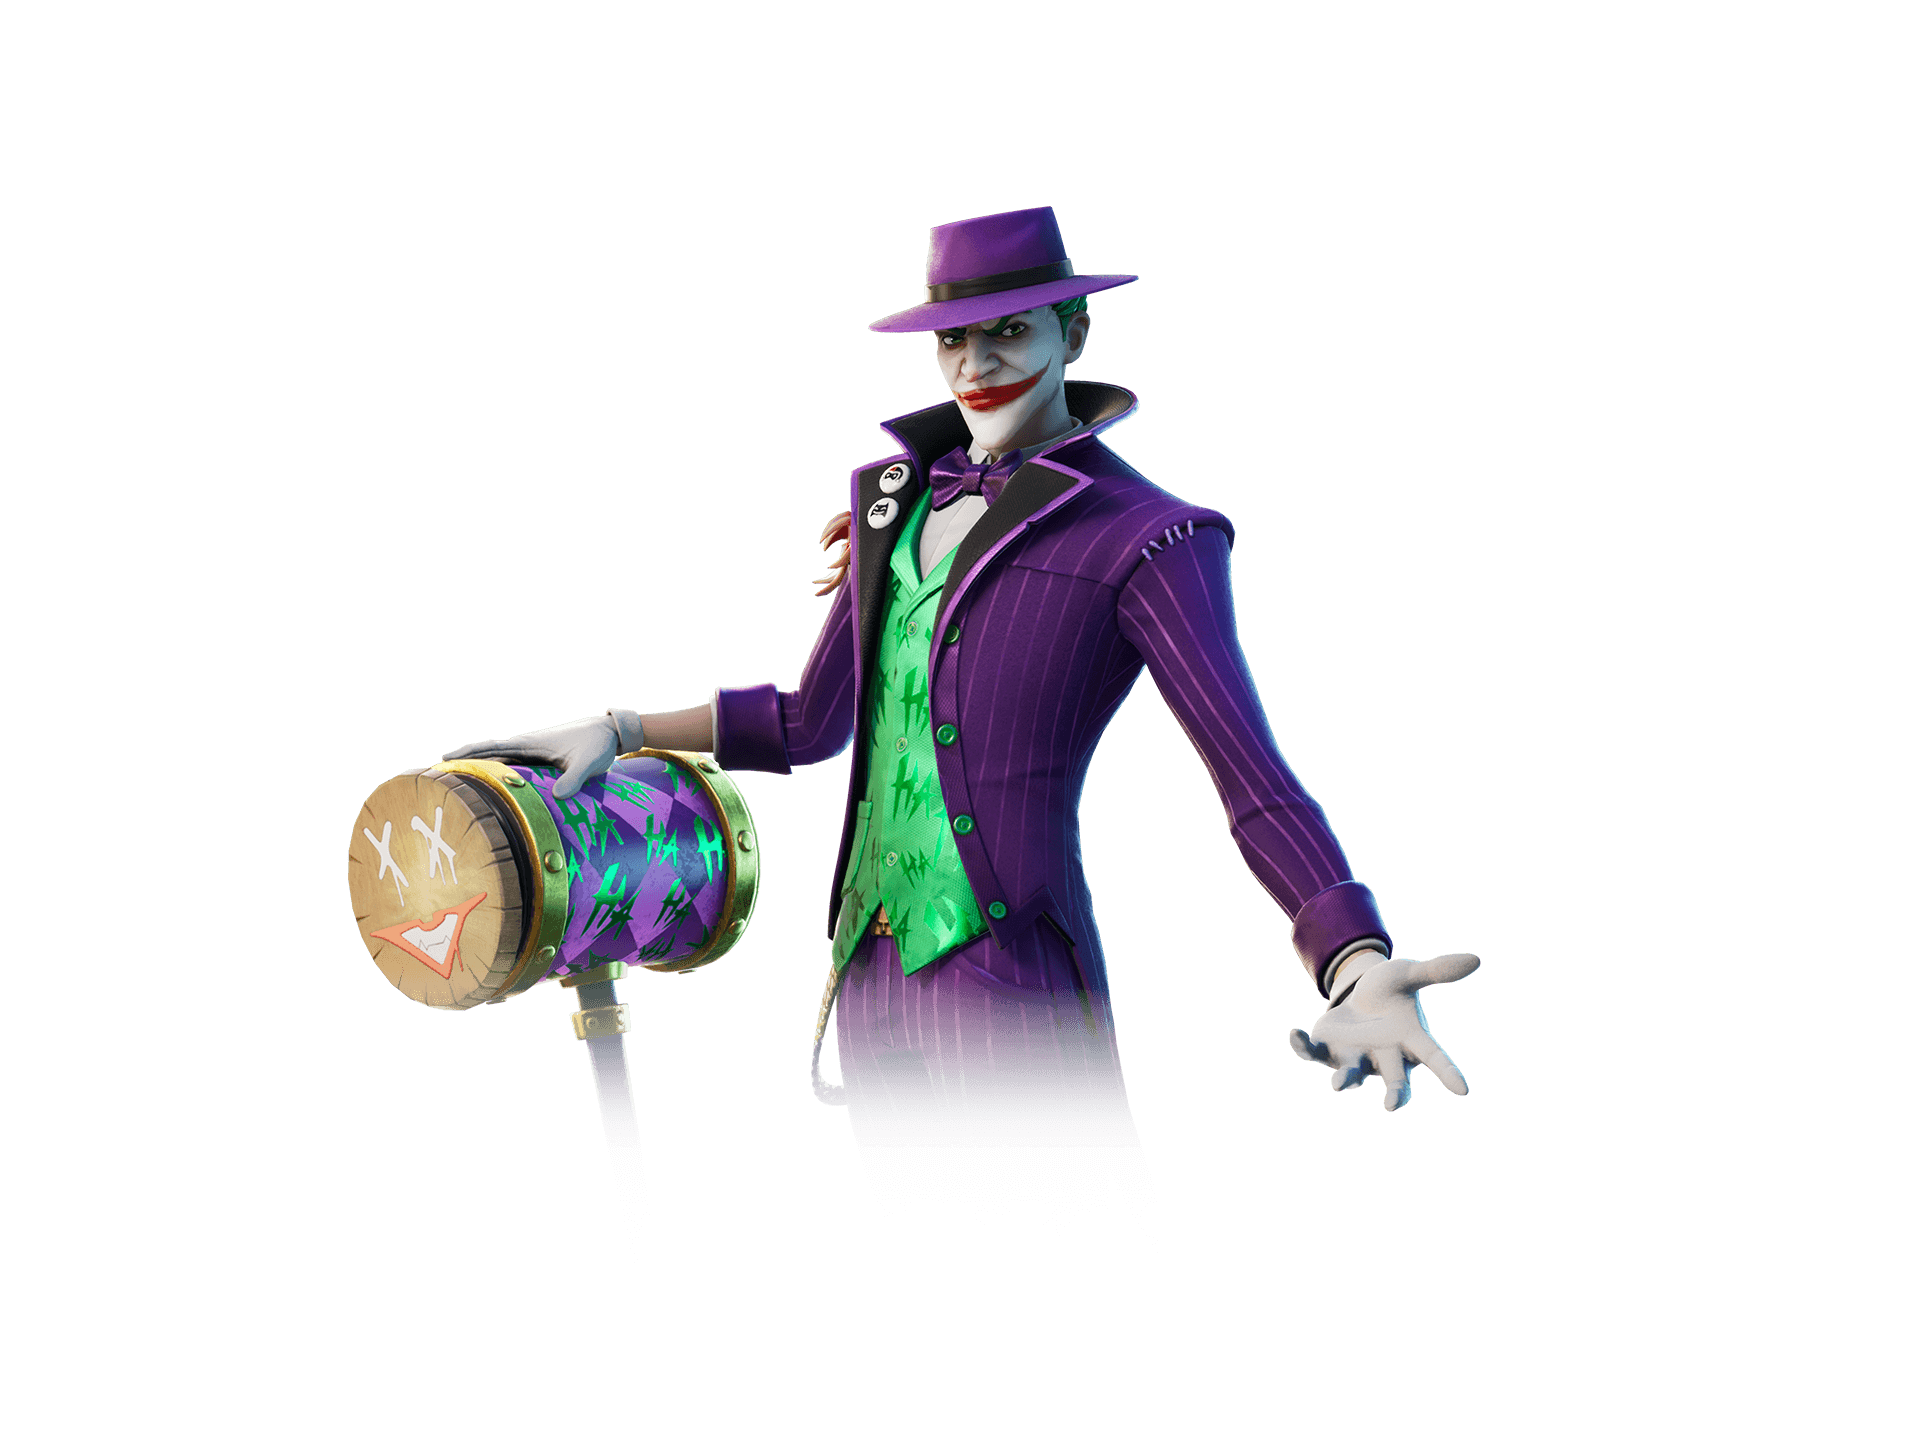 The Joker outfit (with an additional style!)